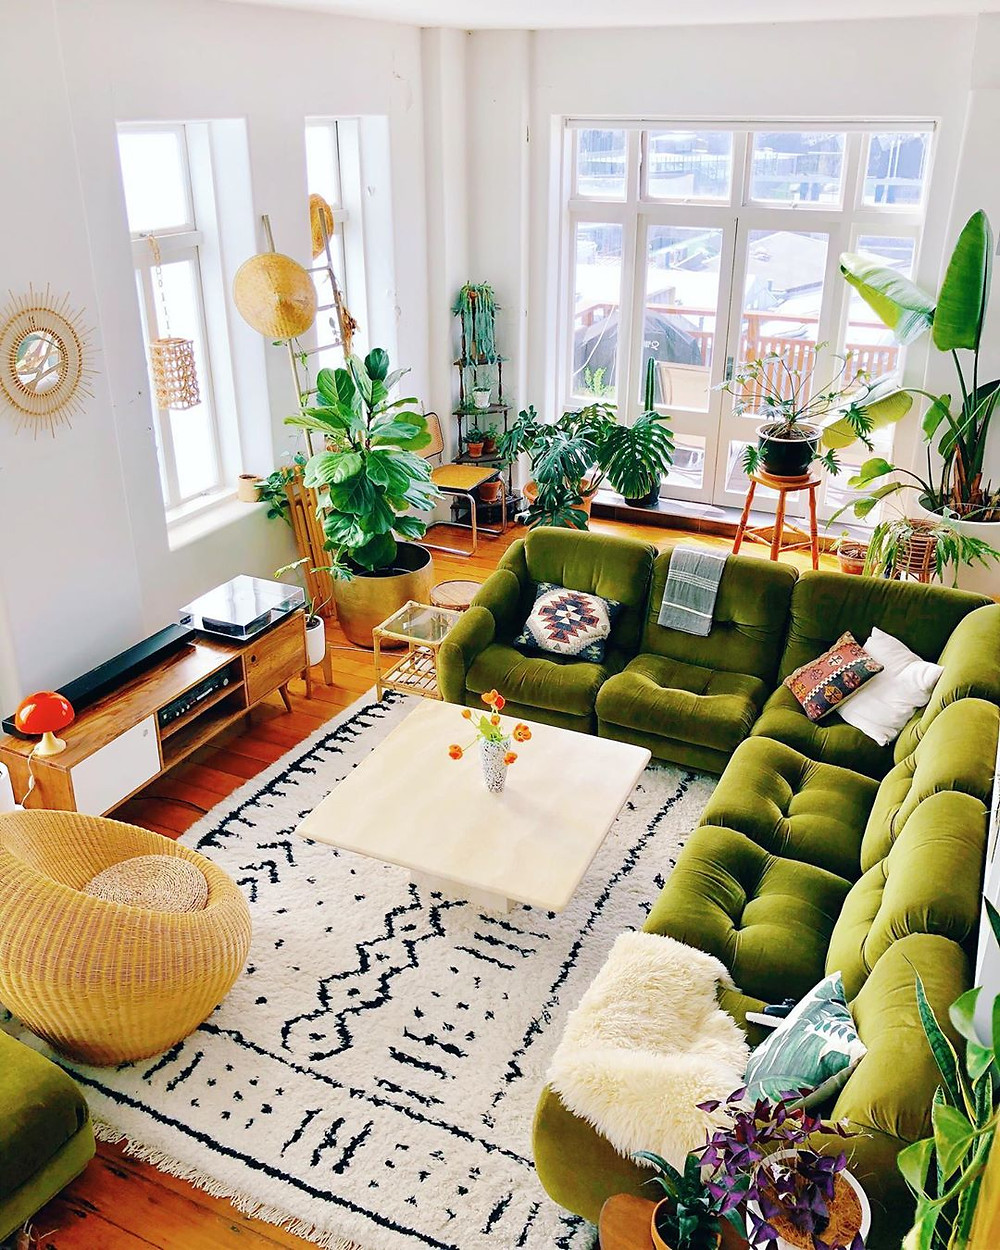 living room with white Moroccan rug, green sofa, and tons of nature and plants